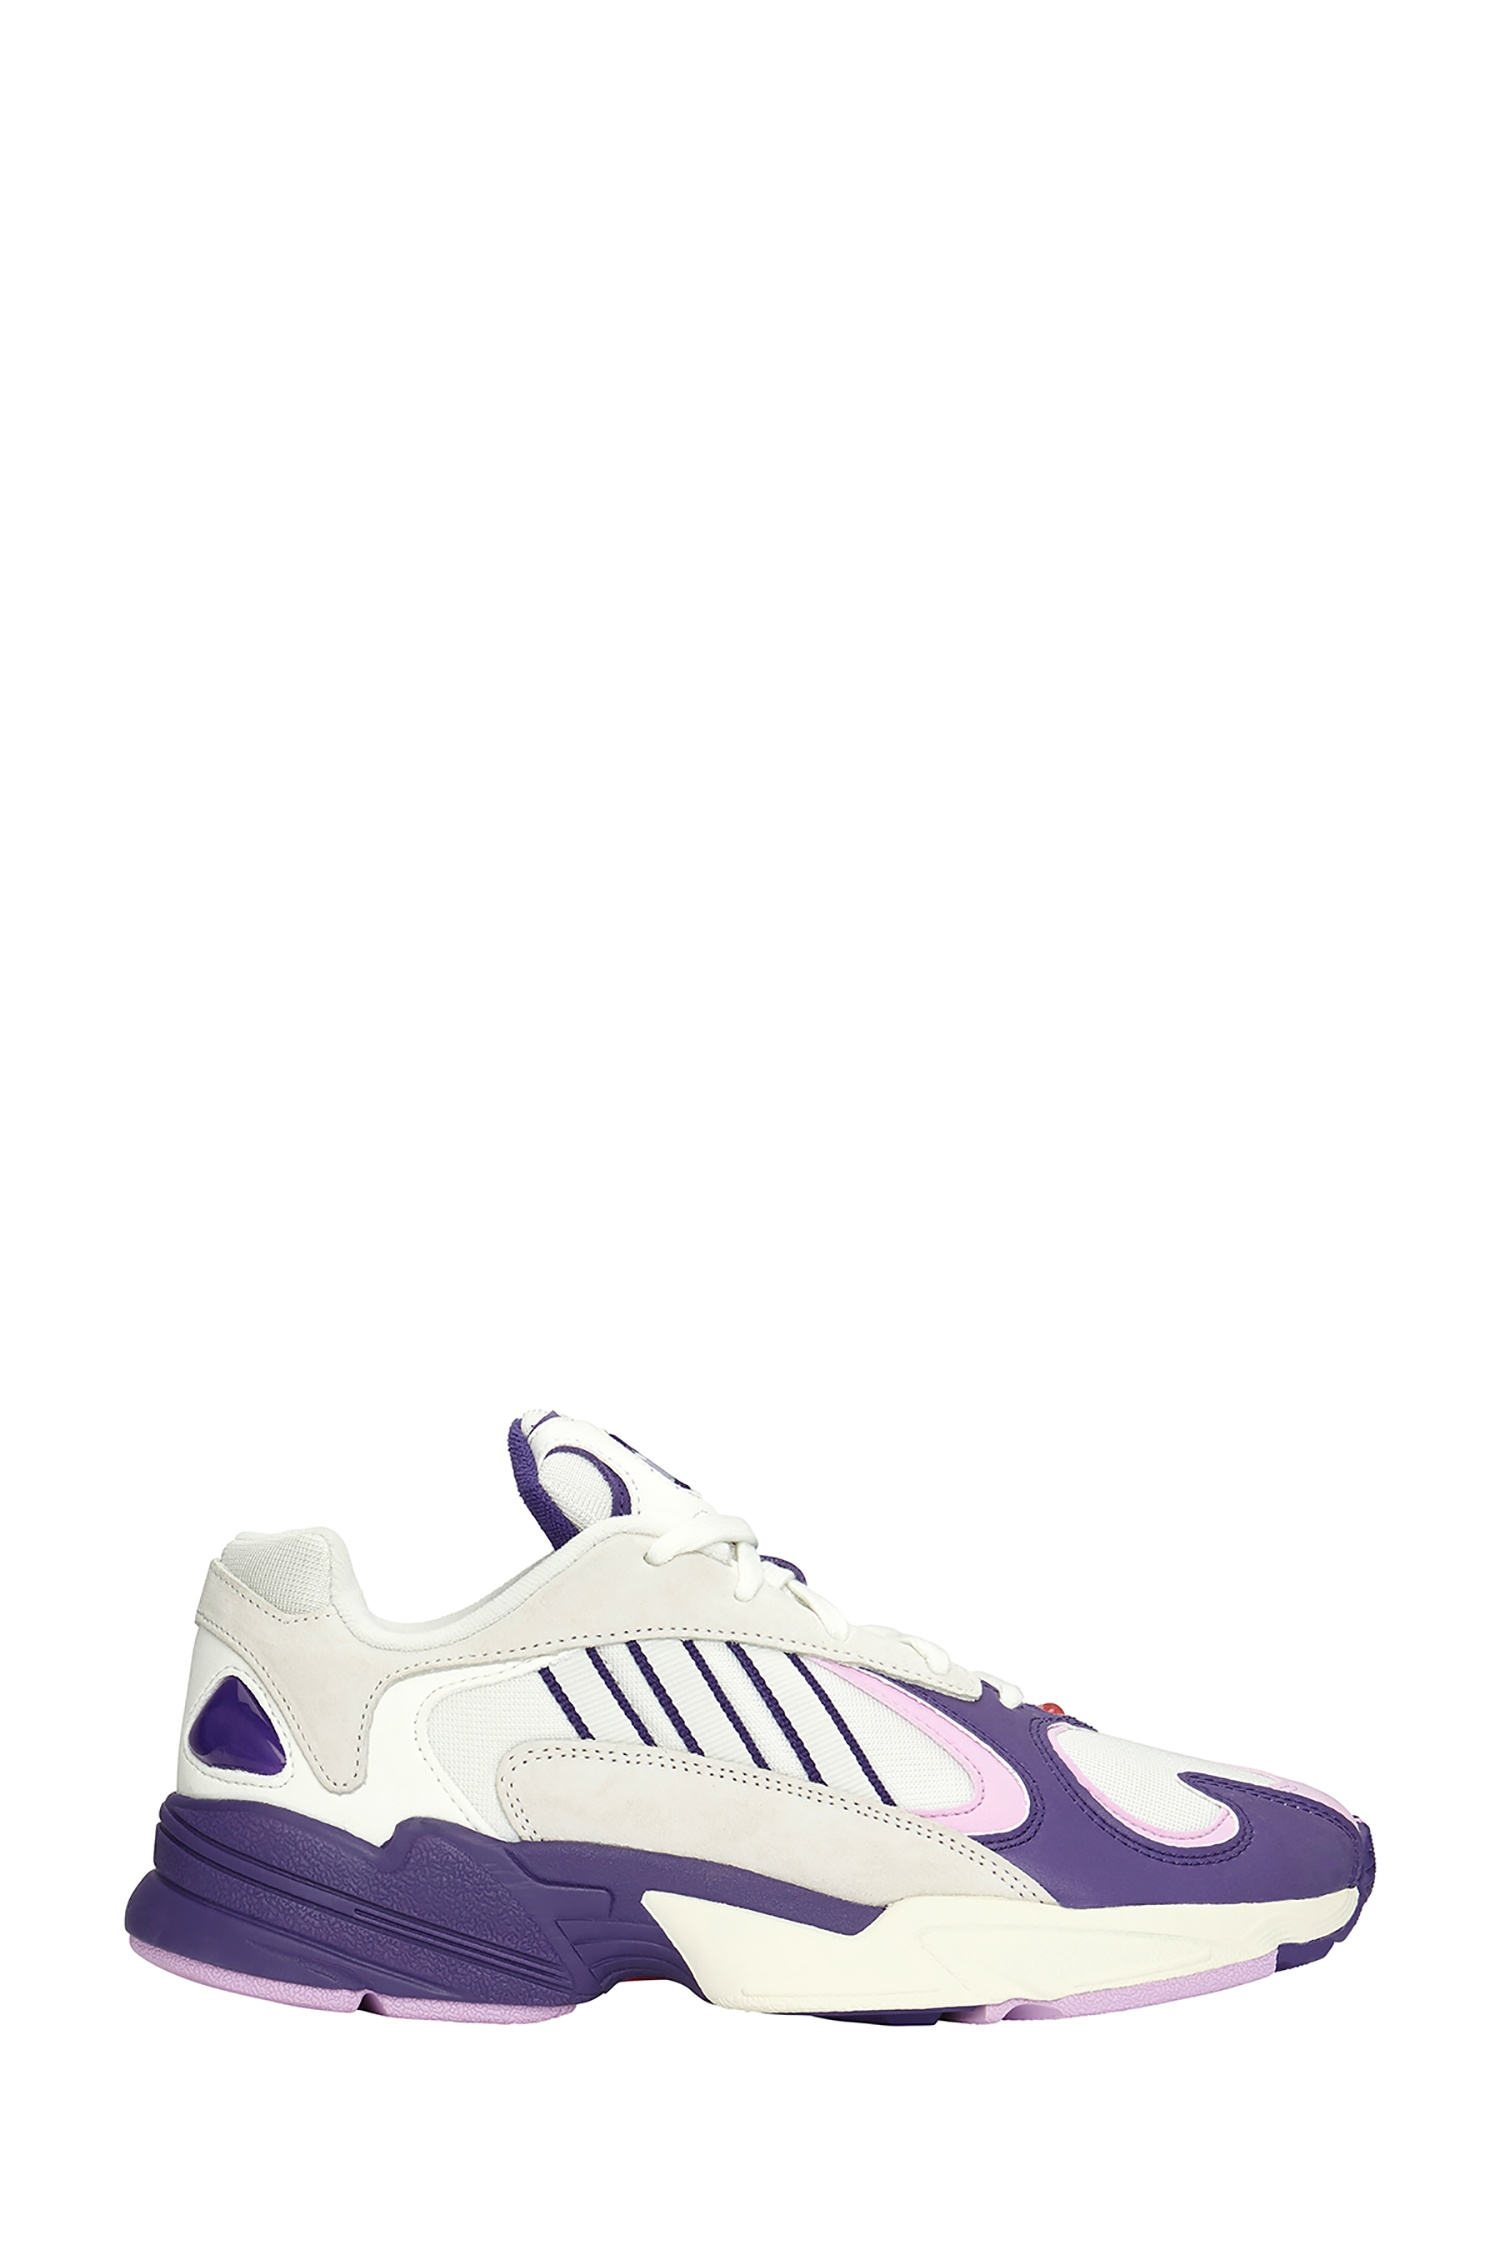 Кроссовки Adidas x Dragon Ball Z YUNG-1 Adidas (фото)